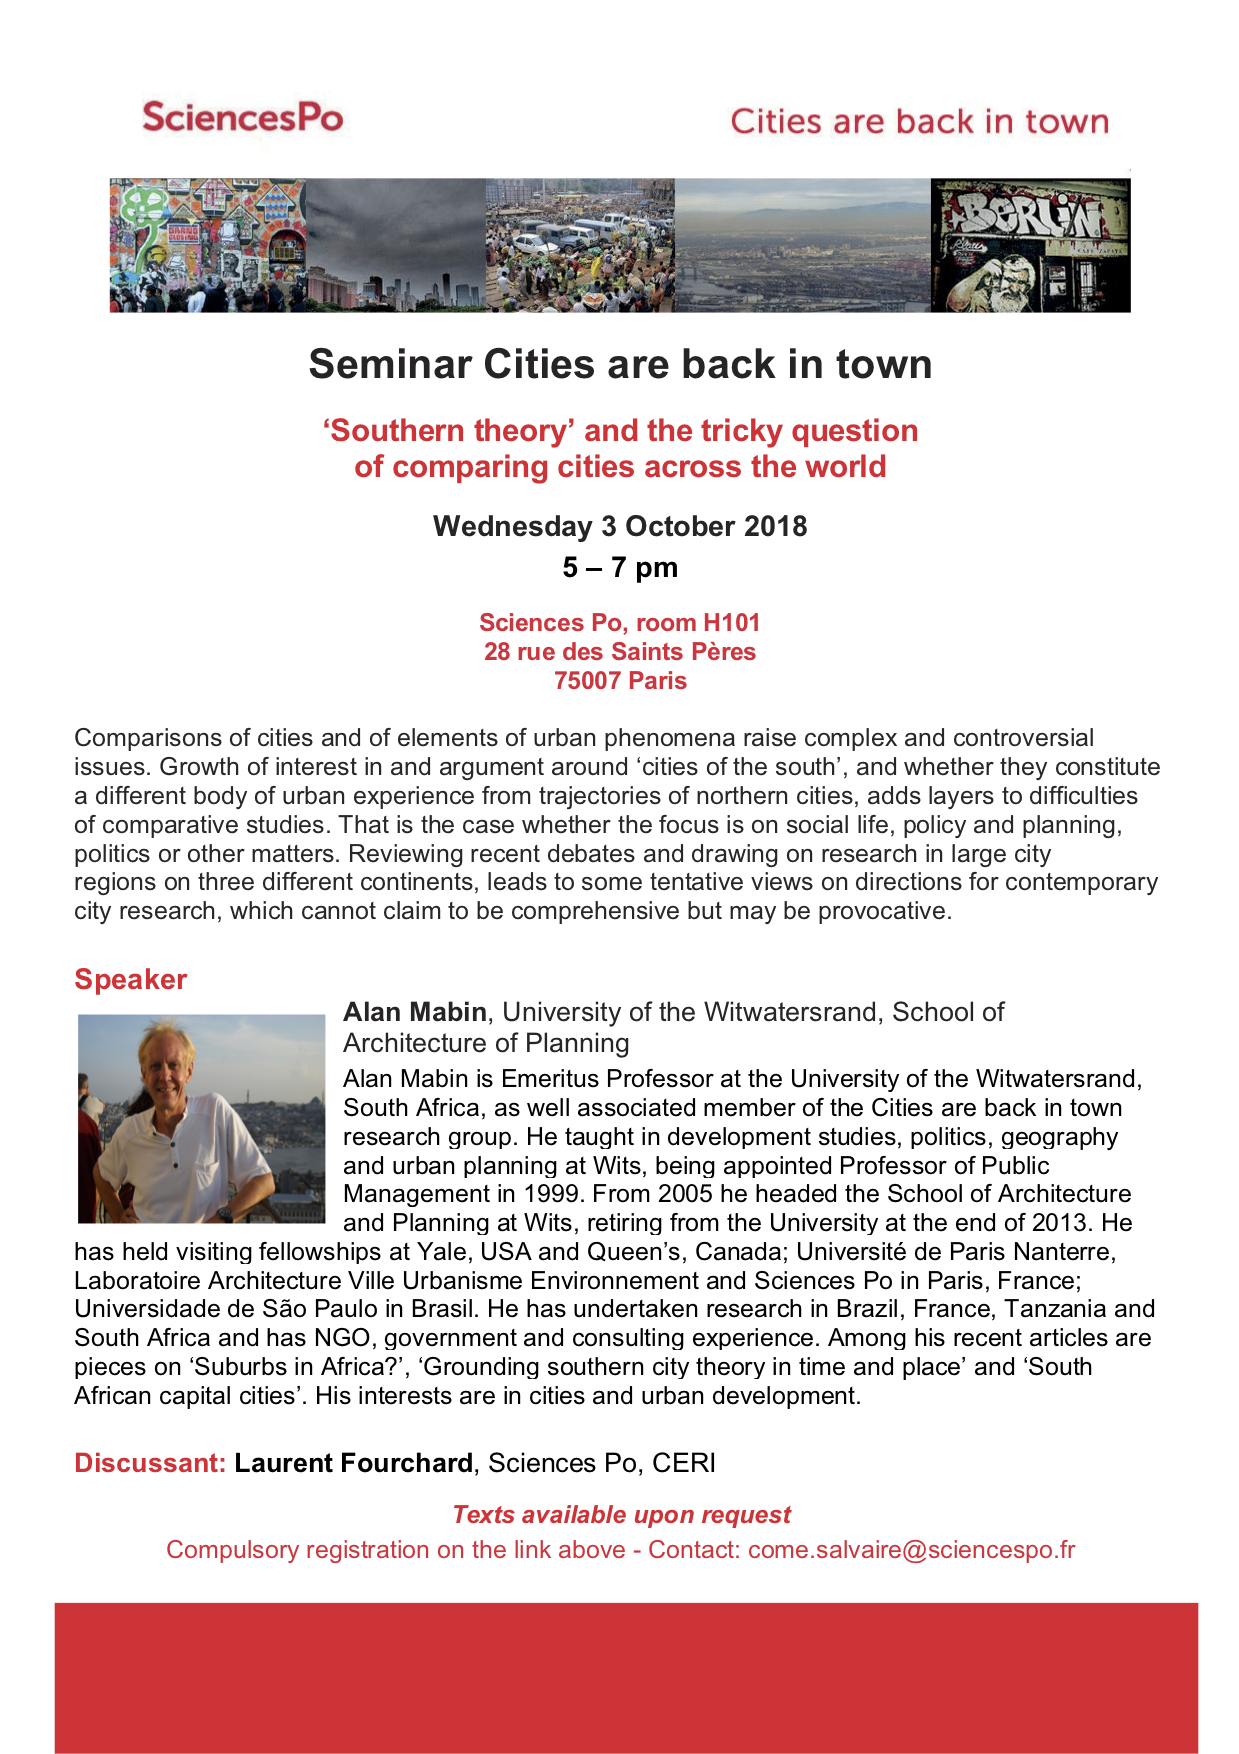 [Séminaire Cities are back in Town] Alan Mabin, « 'Southern theory' and the tricky question of comparing cities across the world », Mercredi 3 octobre 2018, 17-19h